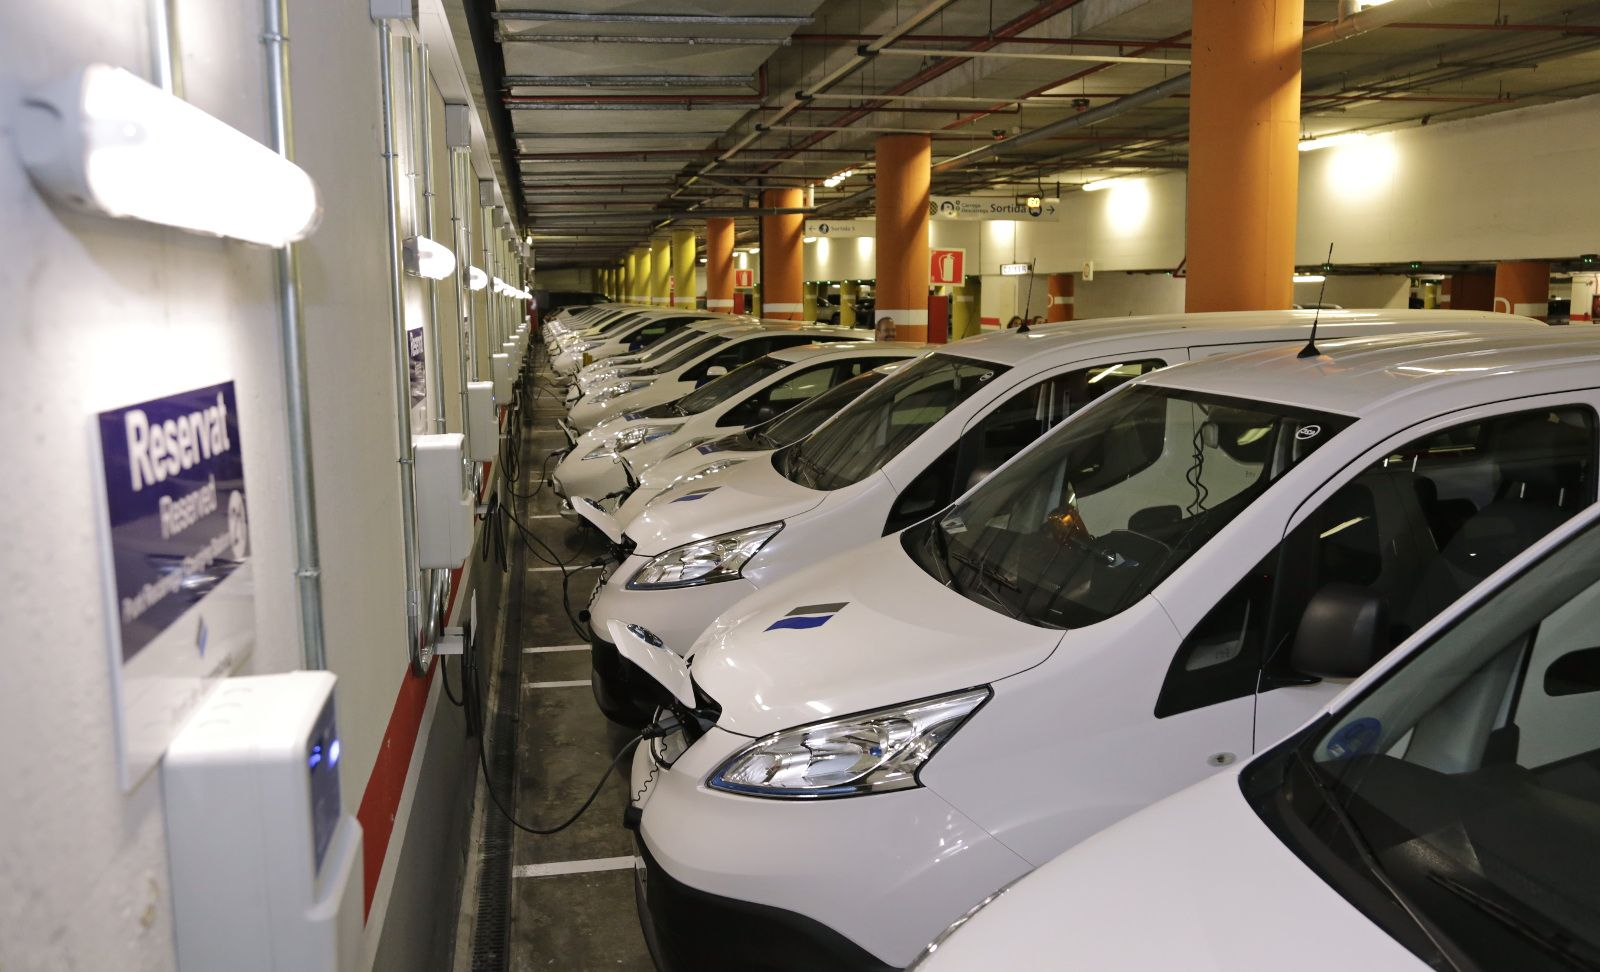 The Port of Barcelona has renewed its fleet of cars betting on the electric vehicle, which now totals 40 in the port. [Image of Port of Barcelona]